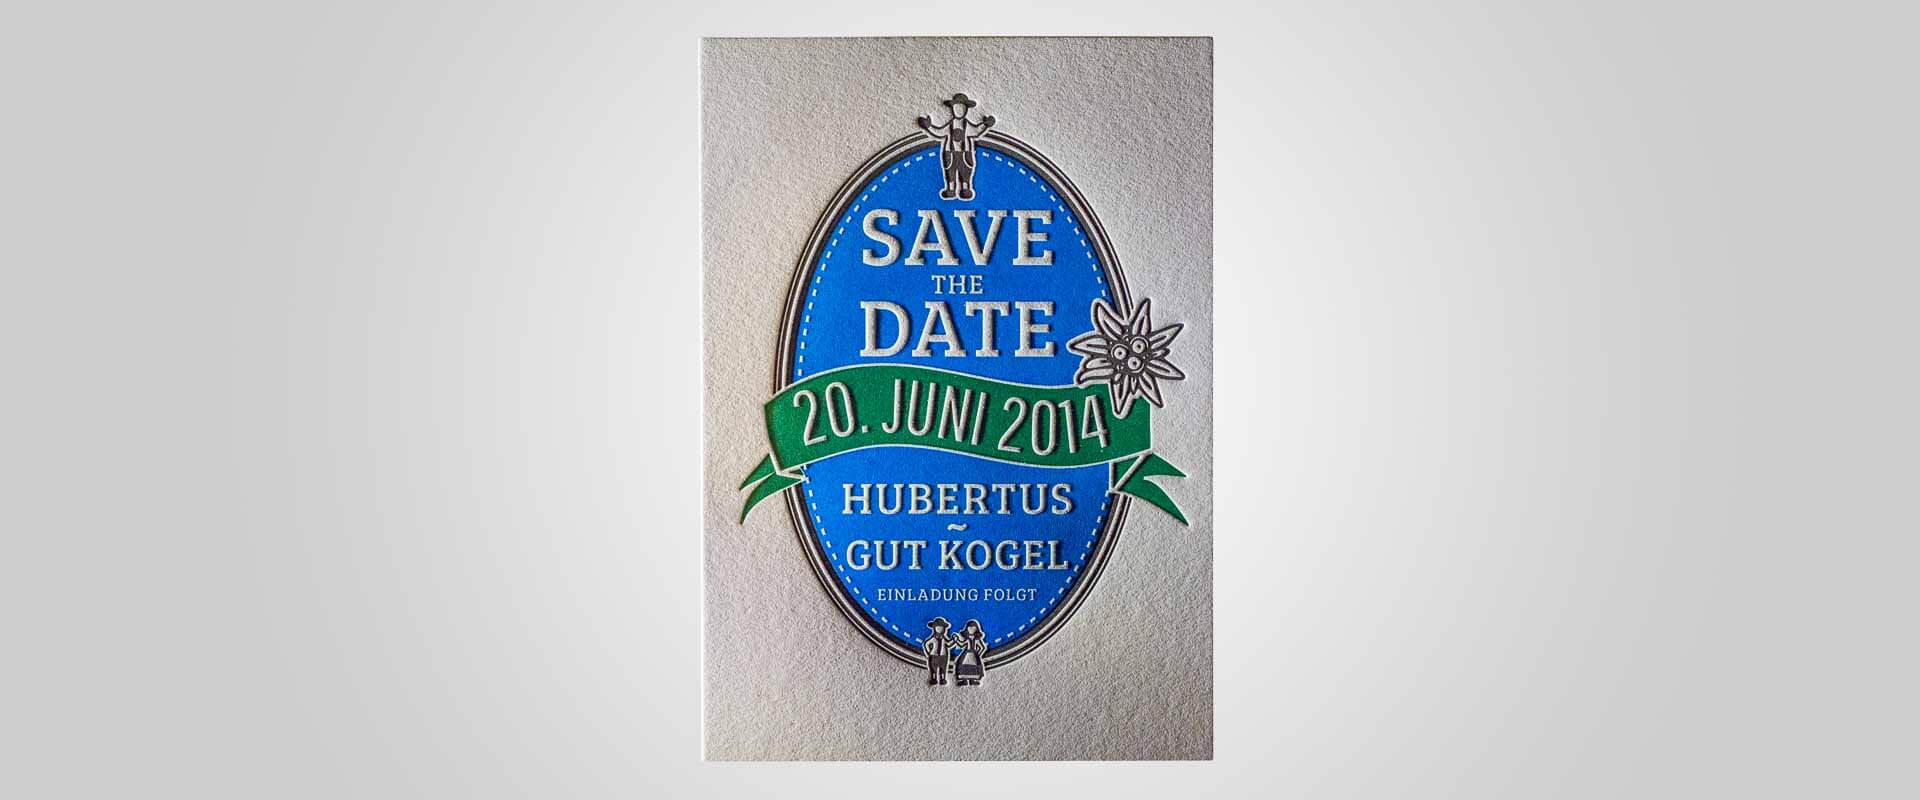 » Save the Date «